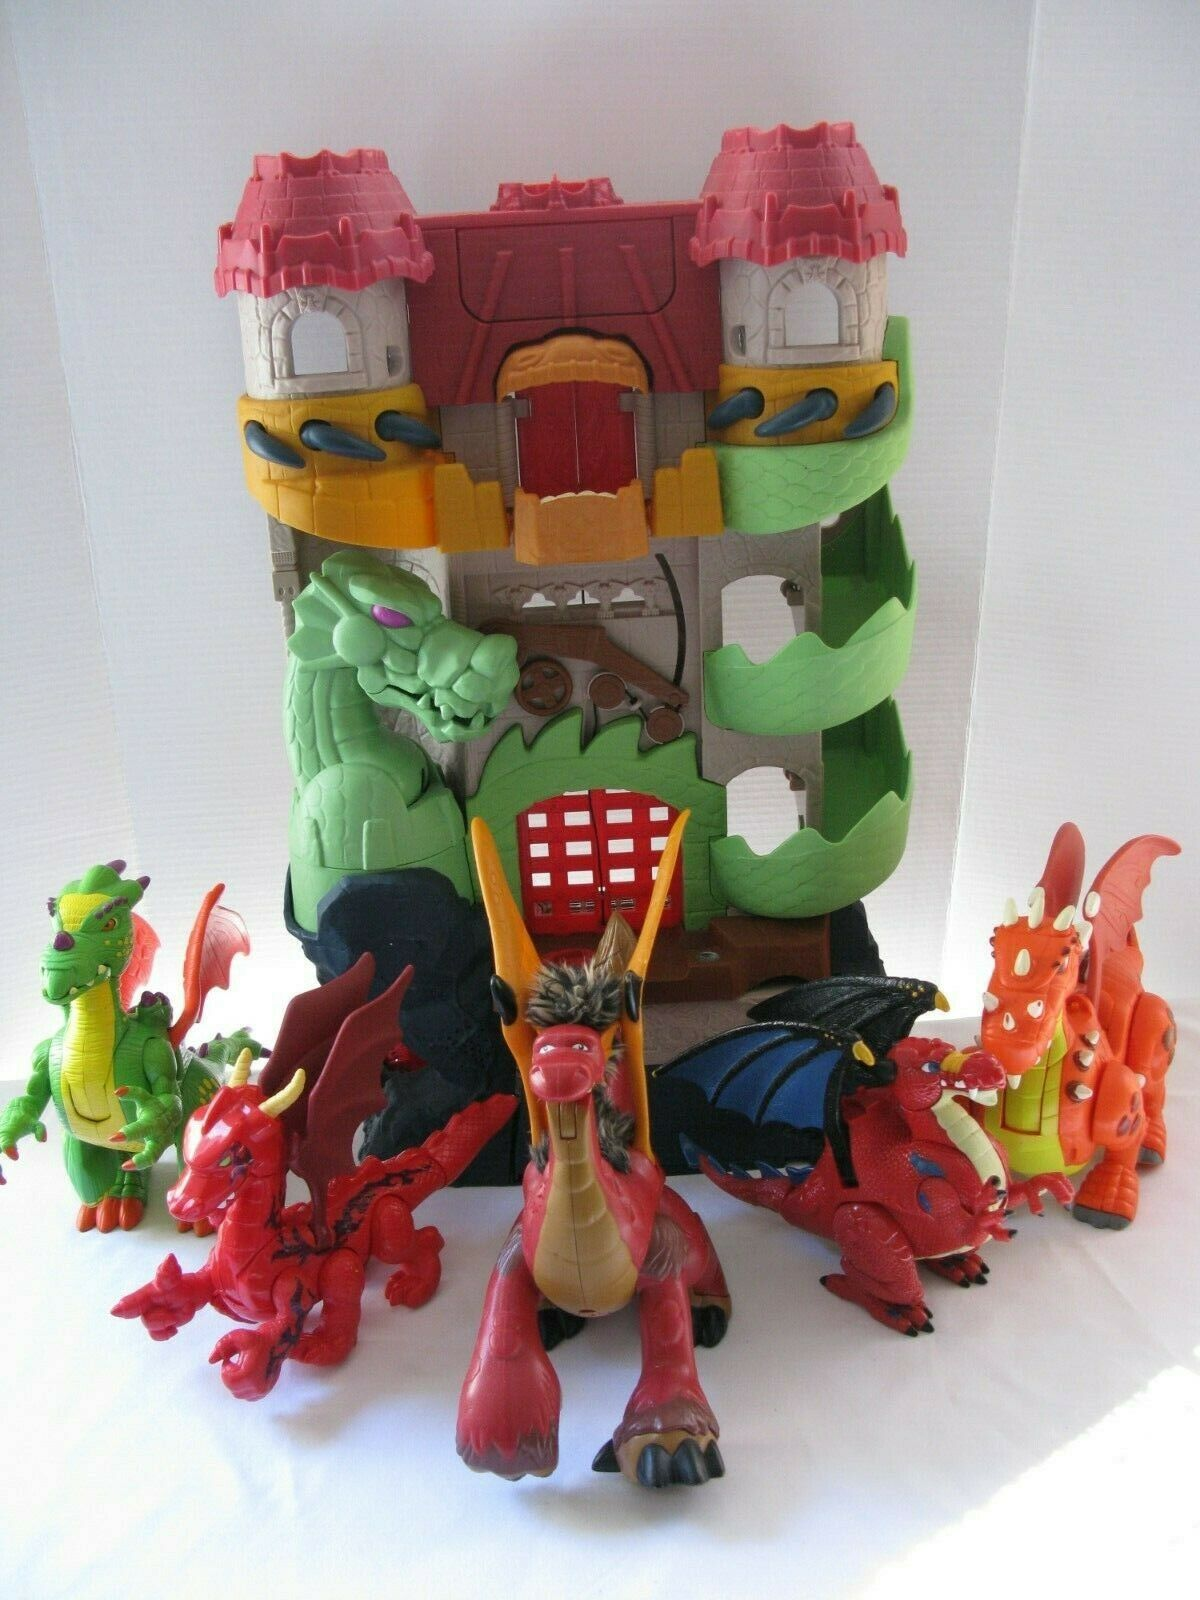 Fisher Price Imaginext Dragon World Fortress Lot 5 Extra Extra Extra Dragons Lights & Sound 9bf4be